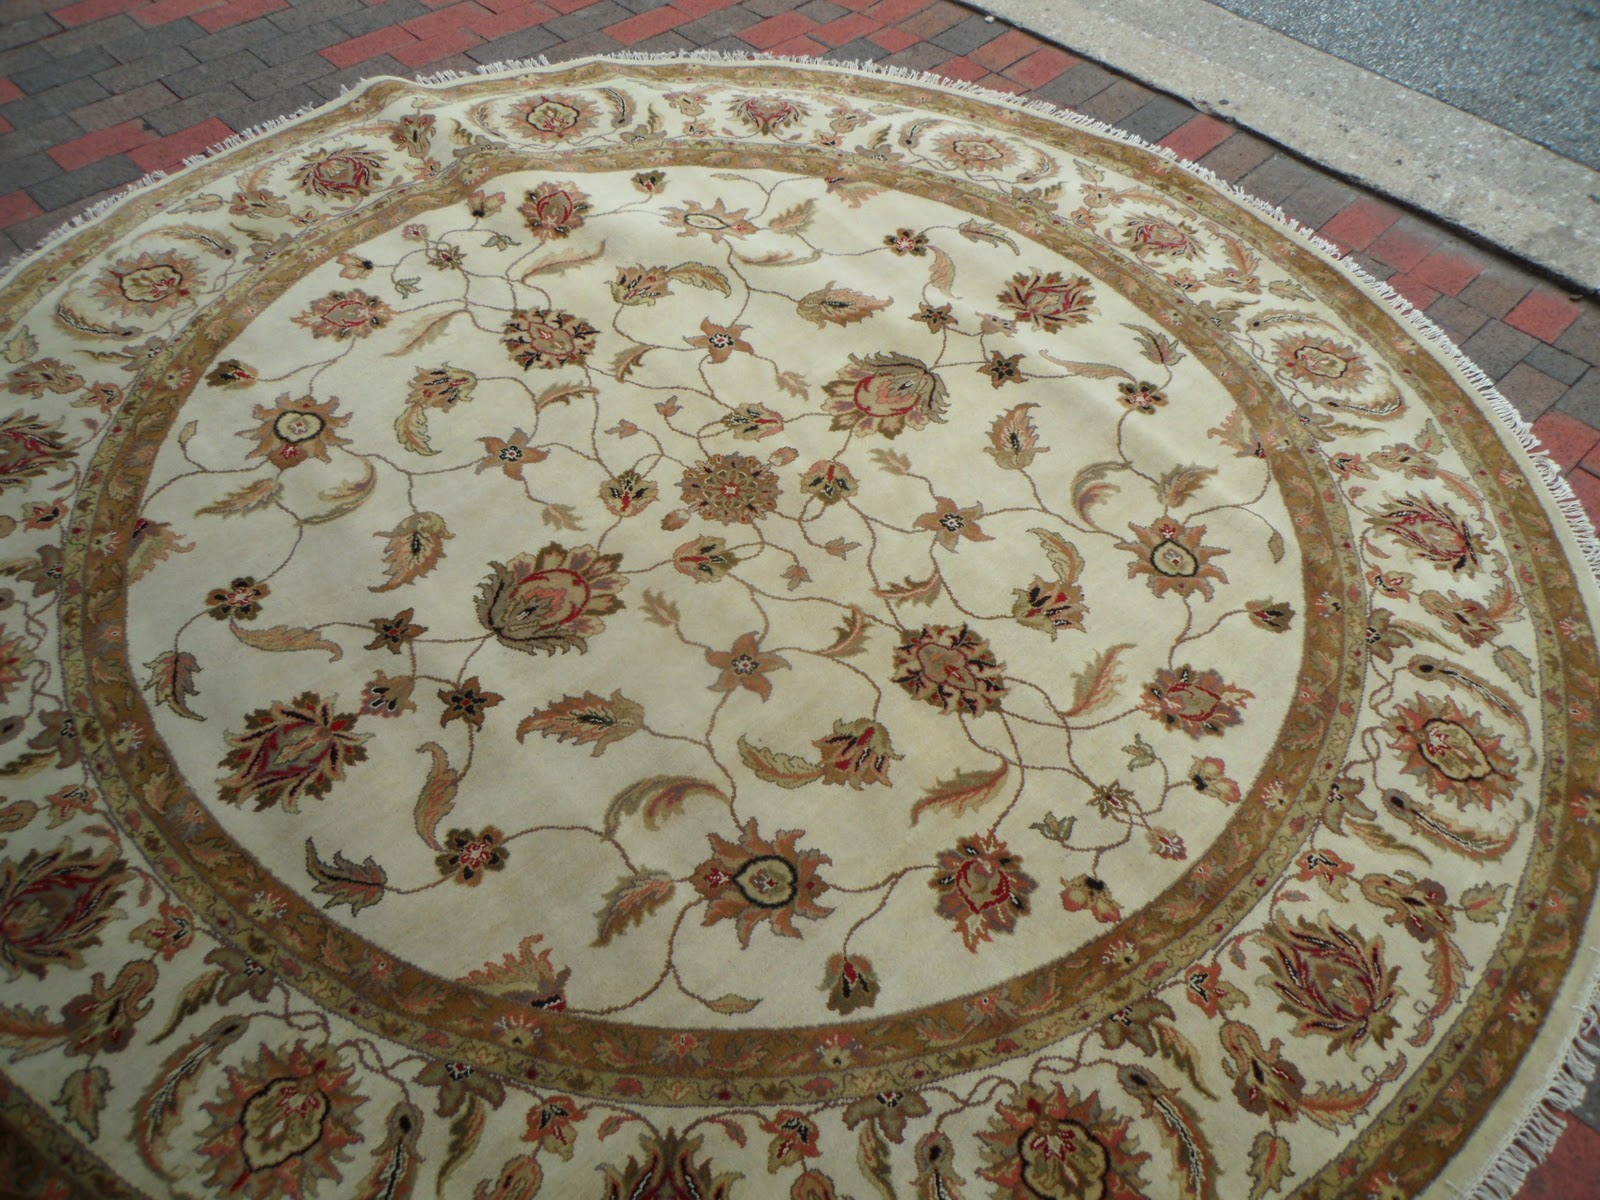 At Main Street Oriental Rugs, We Have A Very Large Selection Of Many  Different Types Of Rugs, Including Round Rugs.